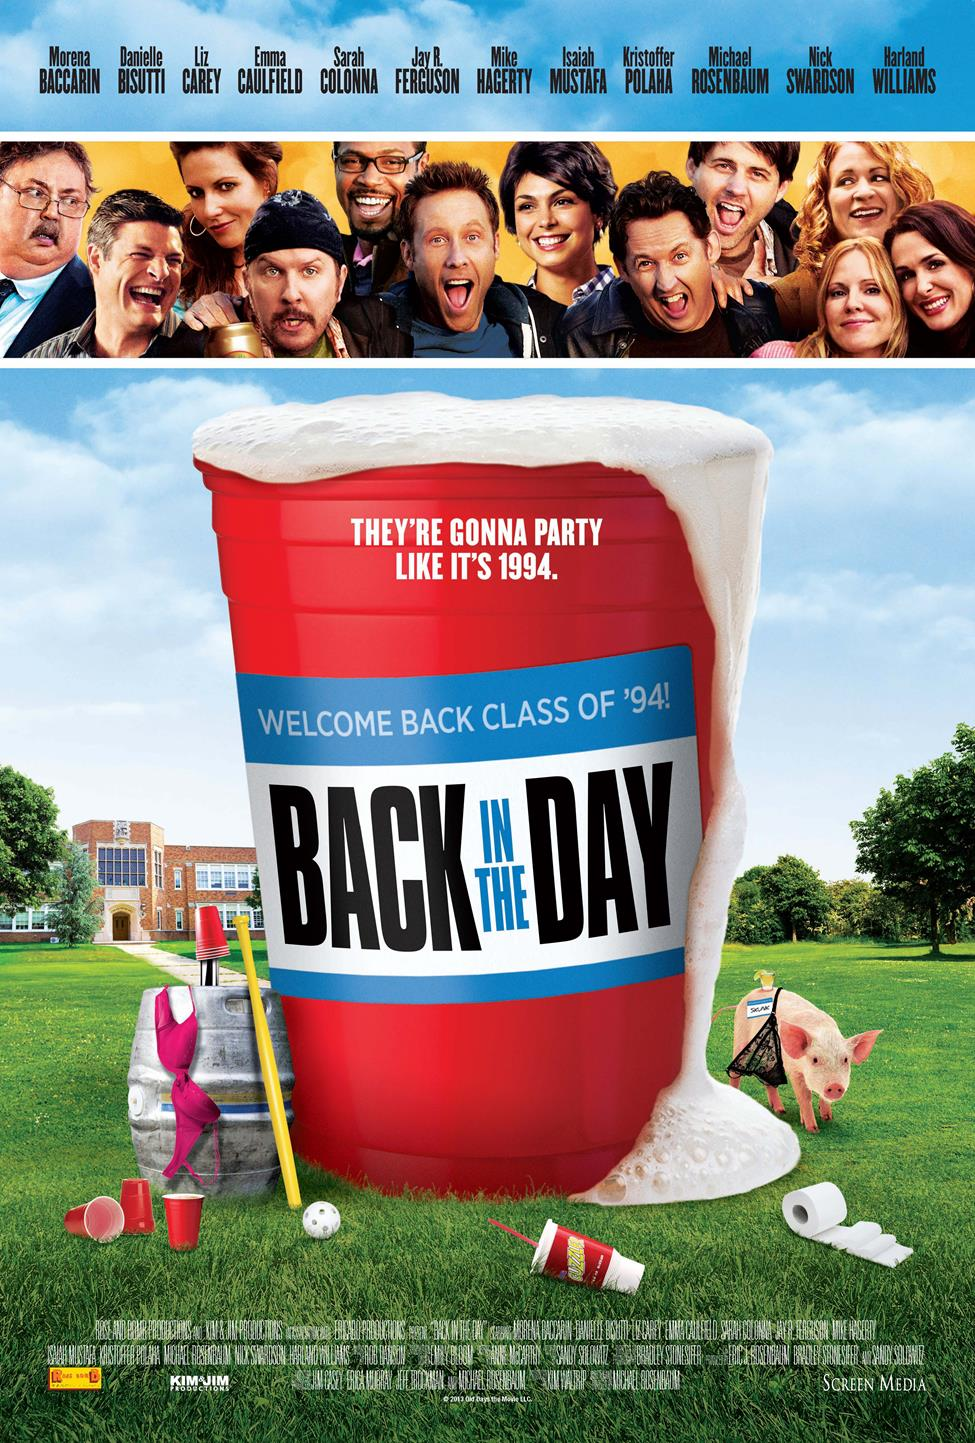 BACK IN THE DAY theatrical poster Michael Rosenbaum Goes Back in the Day with Exclusive Poster Debut